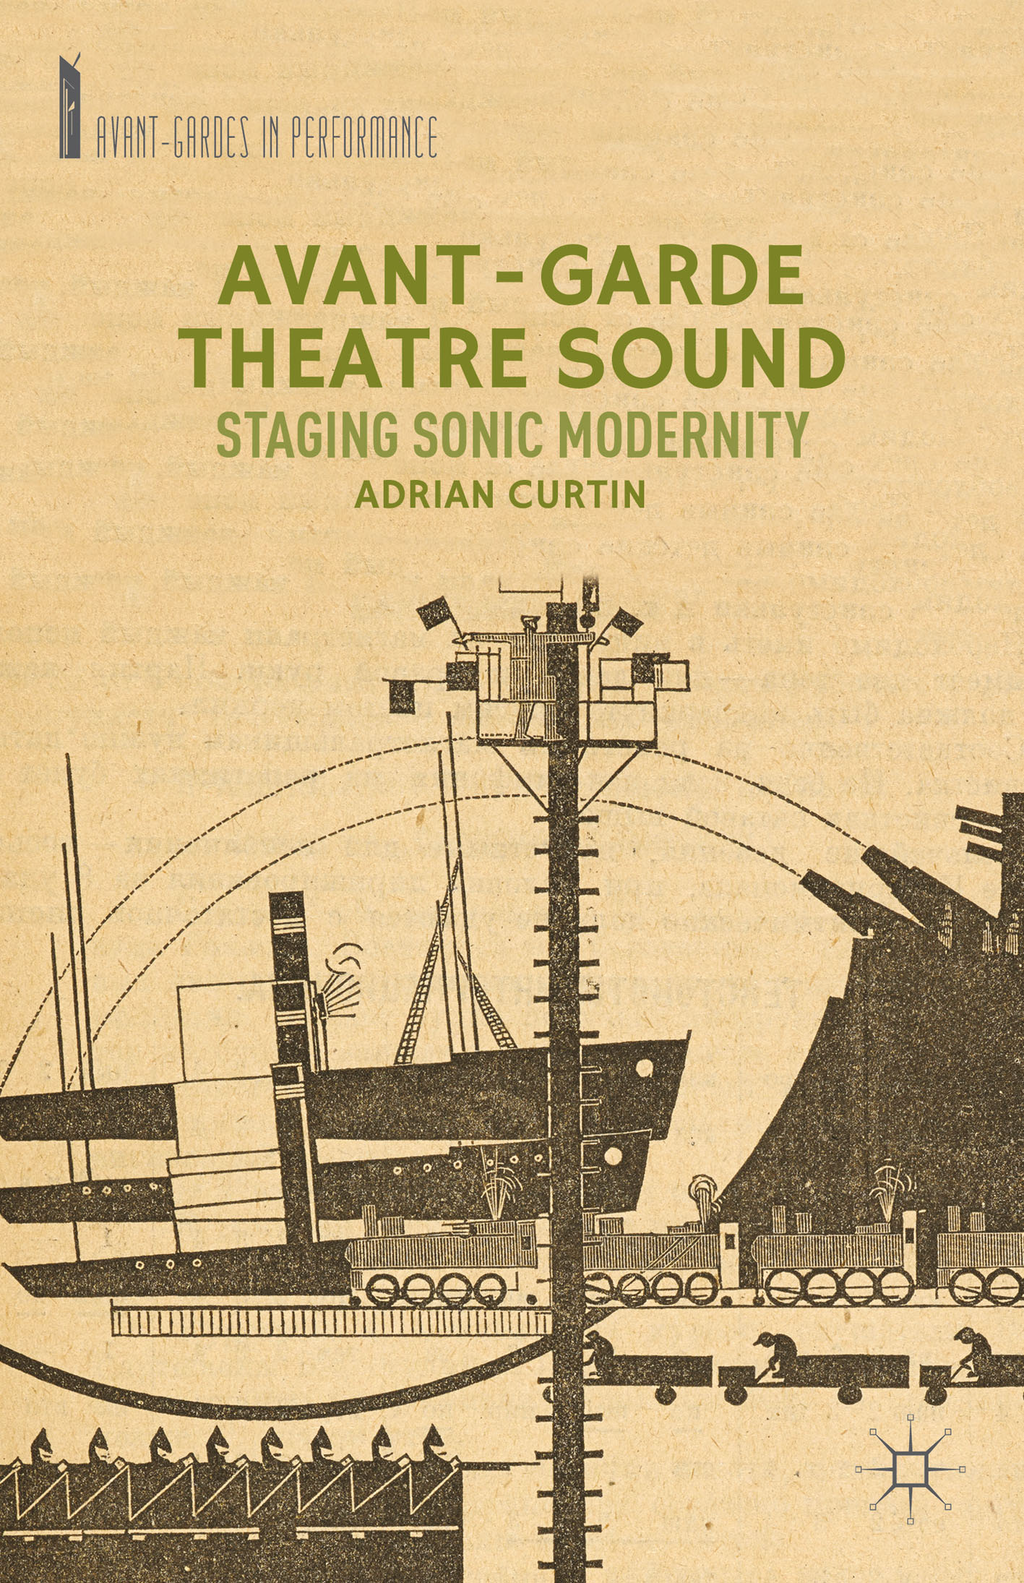 Avant-Garde Theatre Sound Staging Sonic Modernity